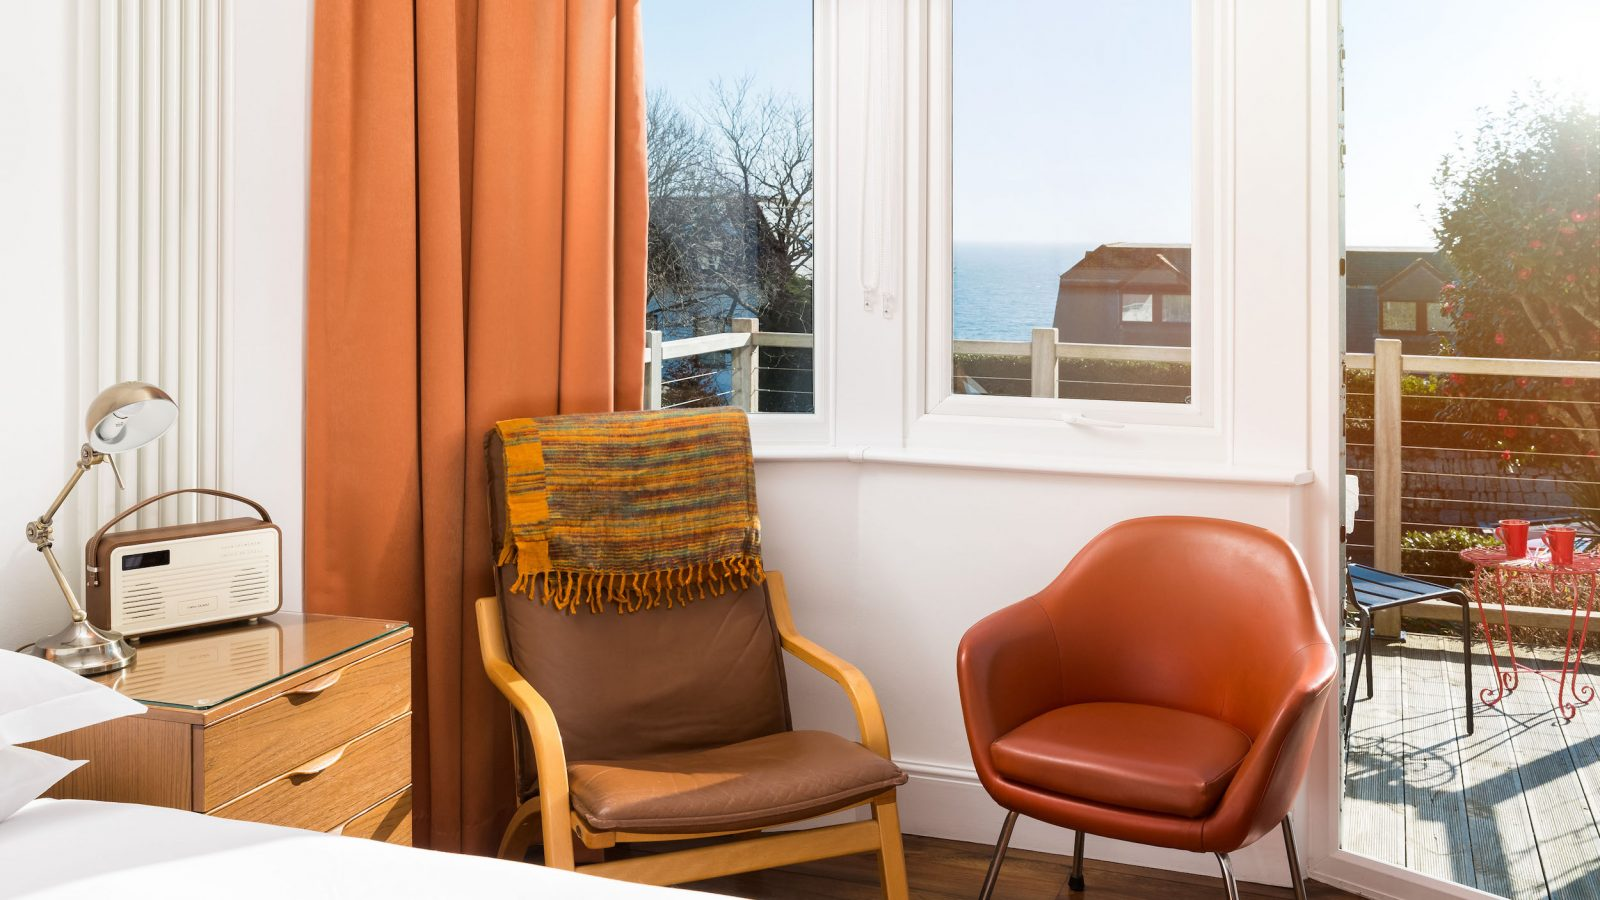 Ground floor king room, sea view, terrace. Dog friendly